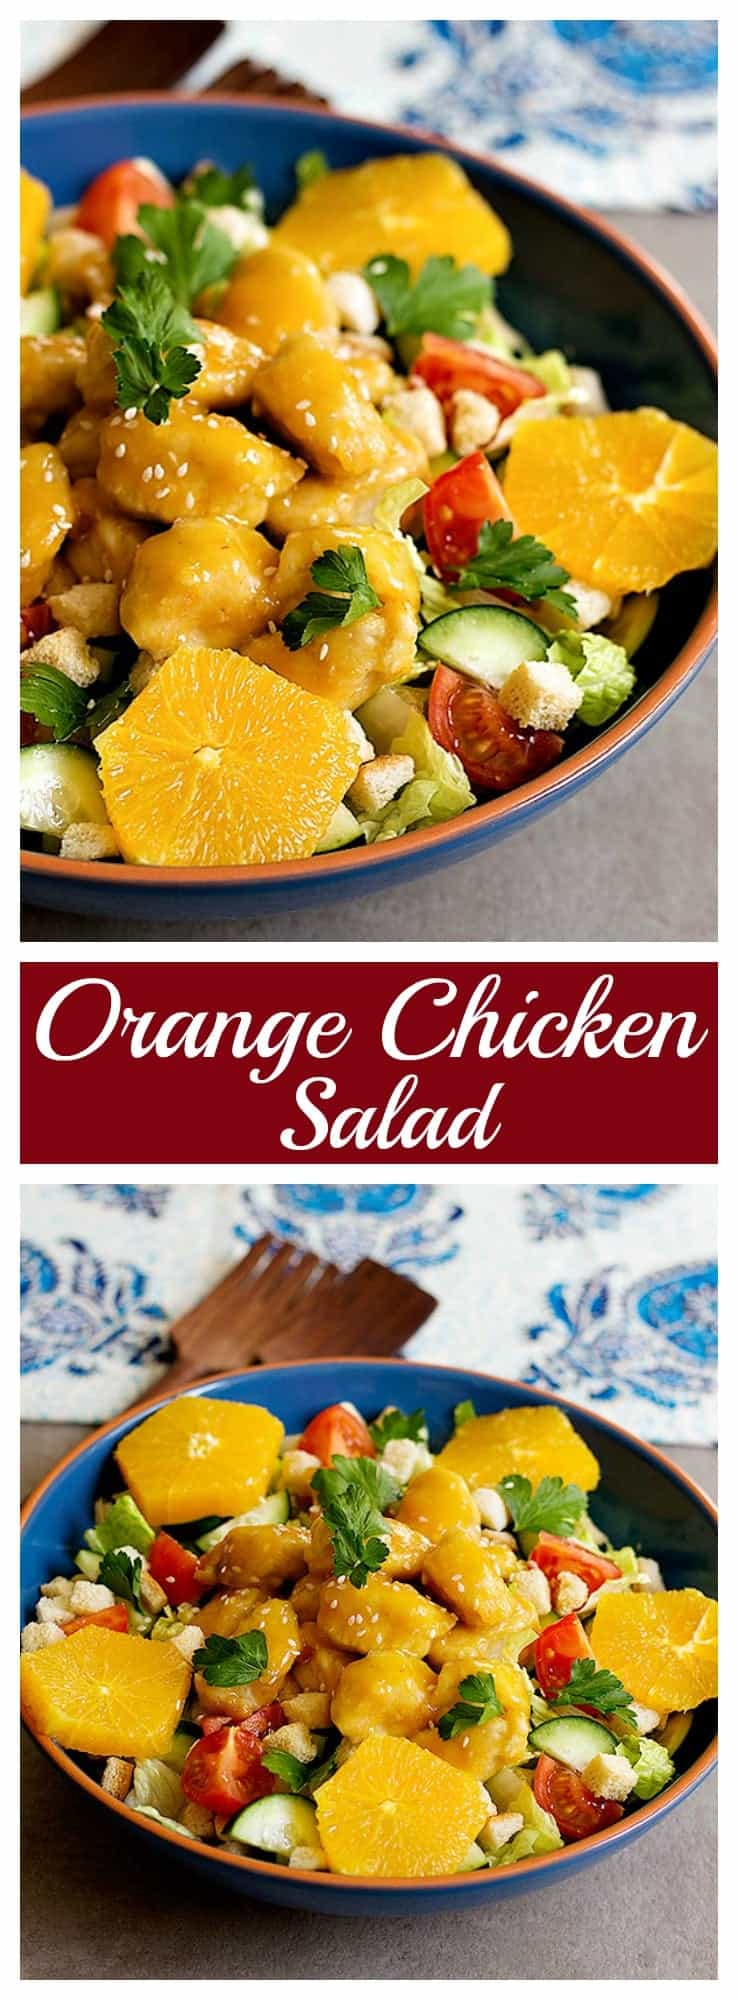 Bring excitement and flavor to ordinary dinners with this delicious orange chicken salad. Fresh salad topped with chicken smothered in lip-smacking orange sauce!